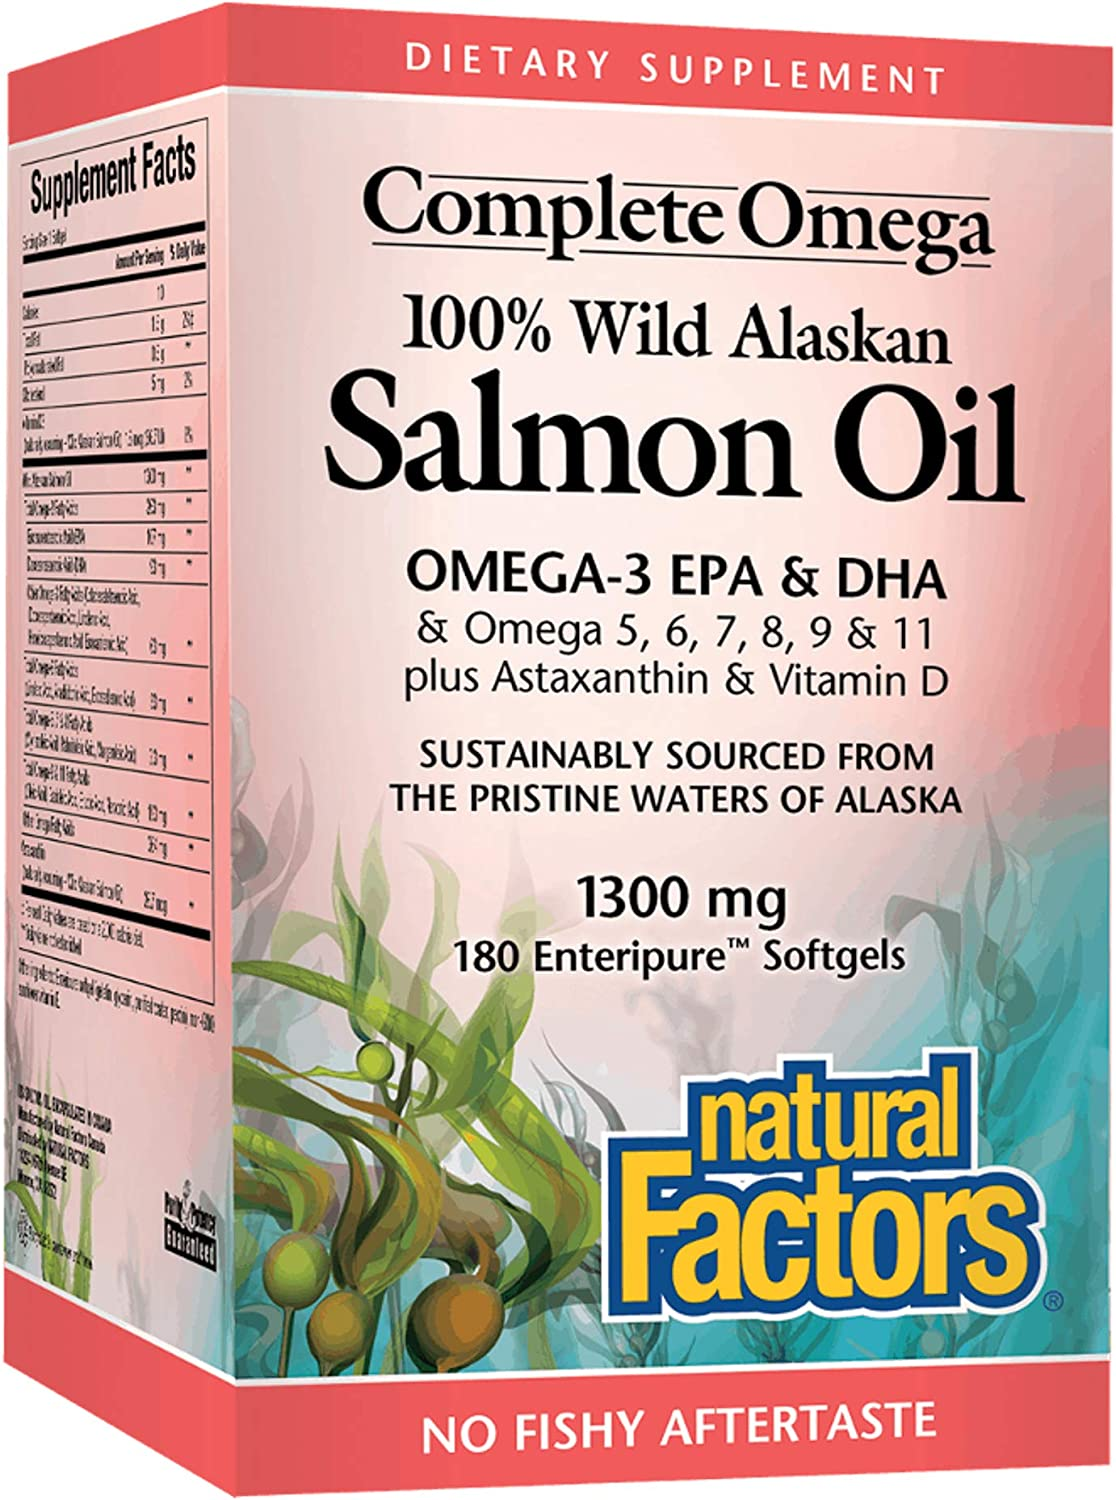 Complete Omega by Natural Factors, Wild Alaskan Salmon Oil, Supports Heart and Brain Health with Omega-3 DHA and EPA, 180 softgels (180 servings)